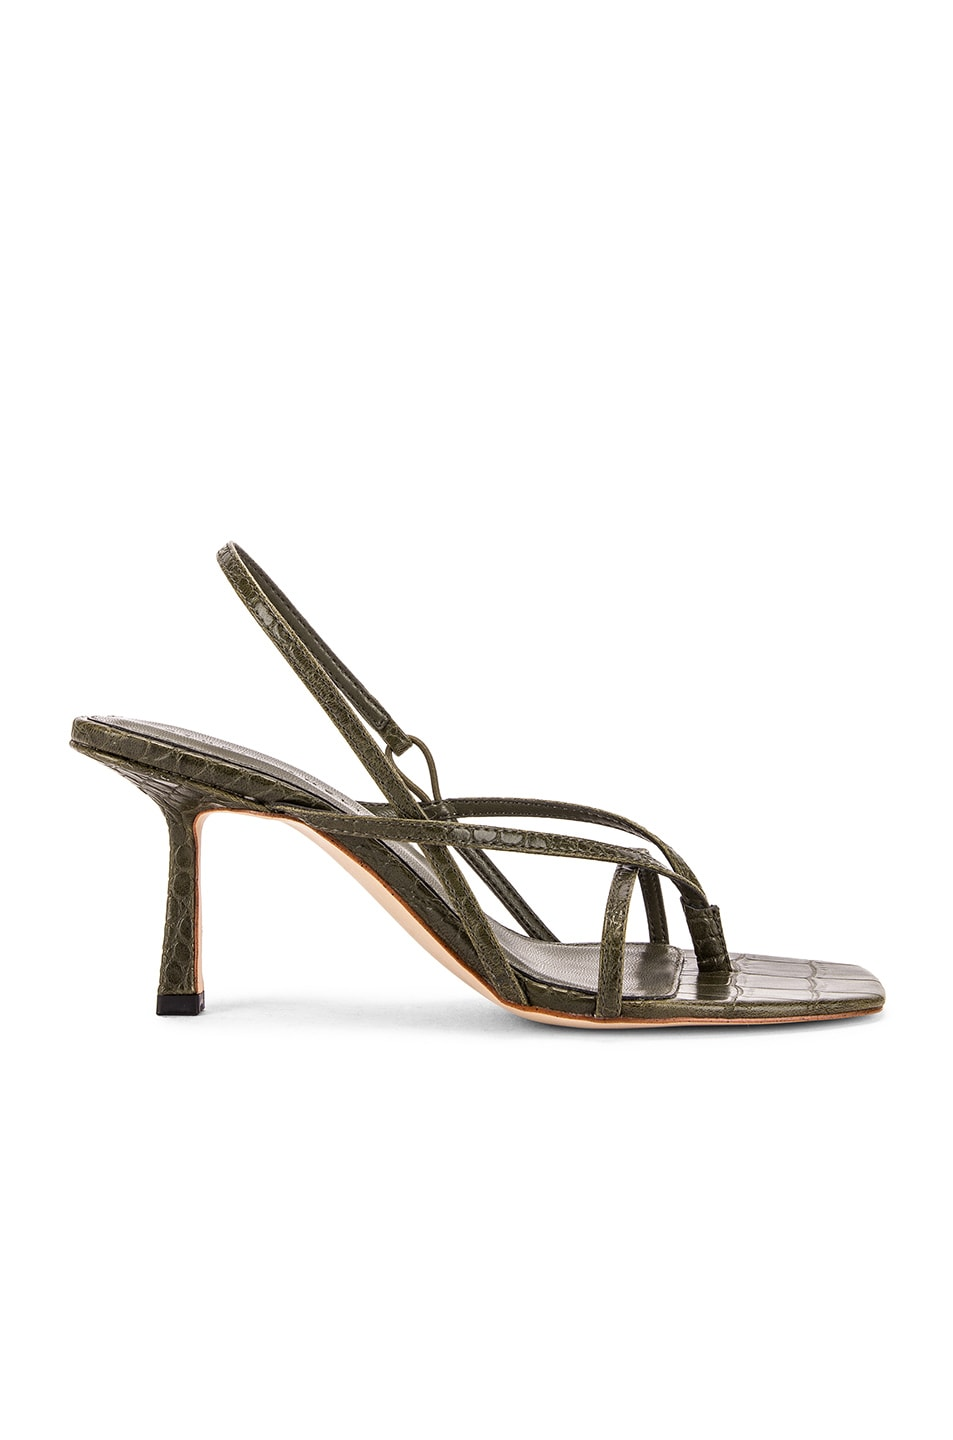 Image 1 of Studio Amelia Vegan 2.4 Flip Flop Heel in Olive Croc Leather